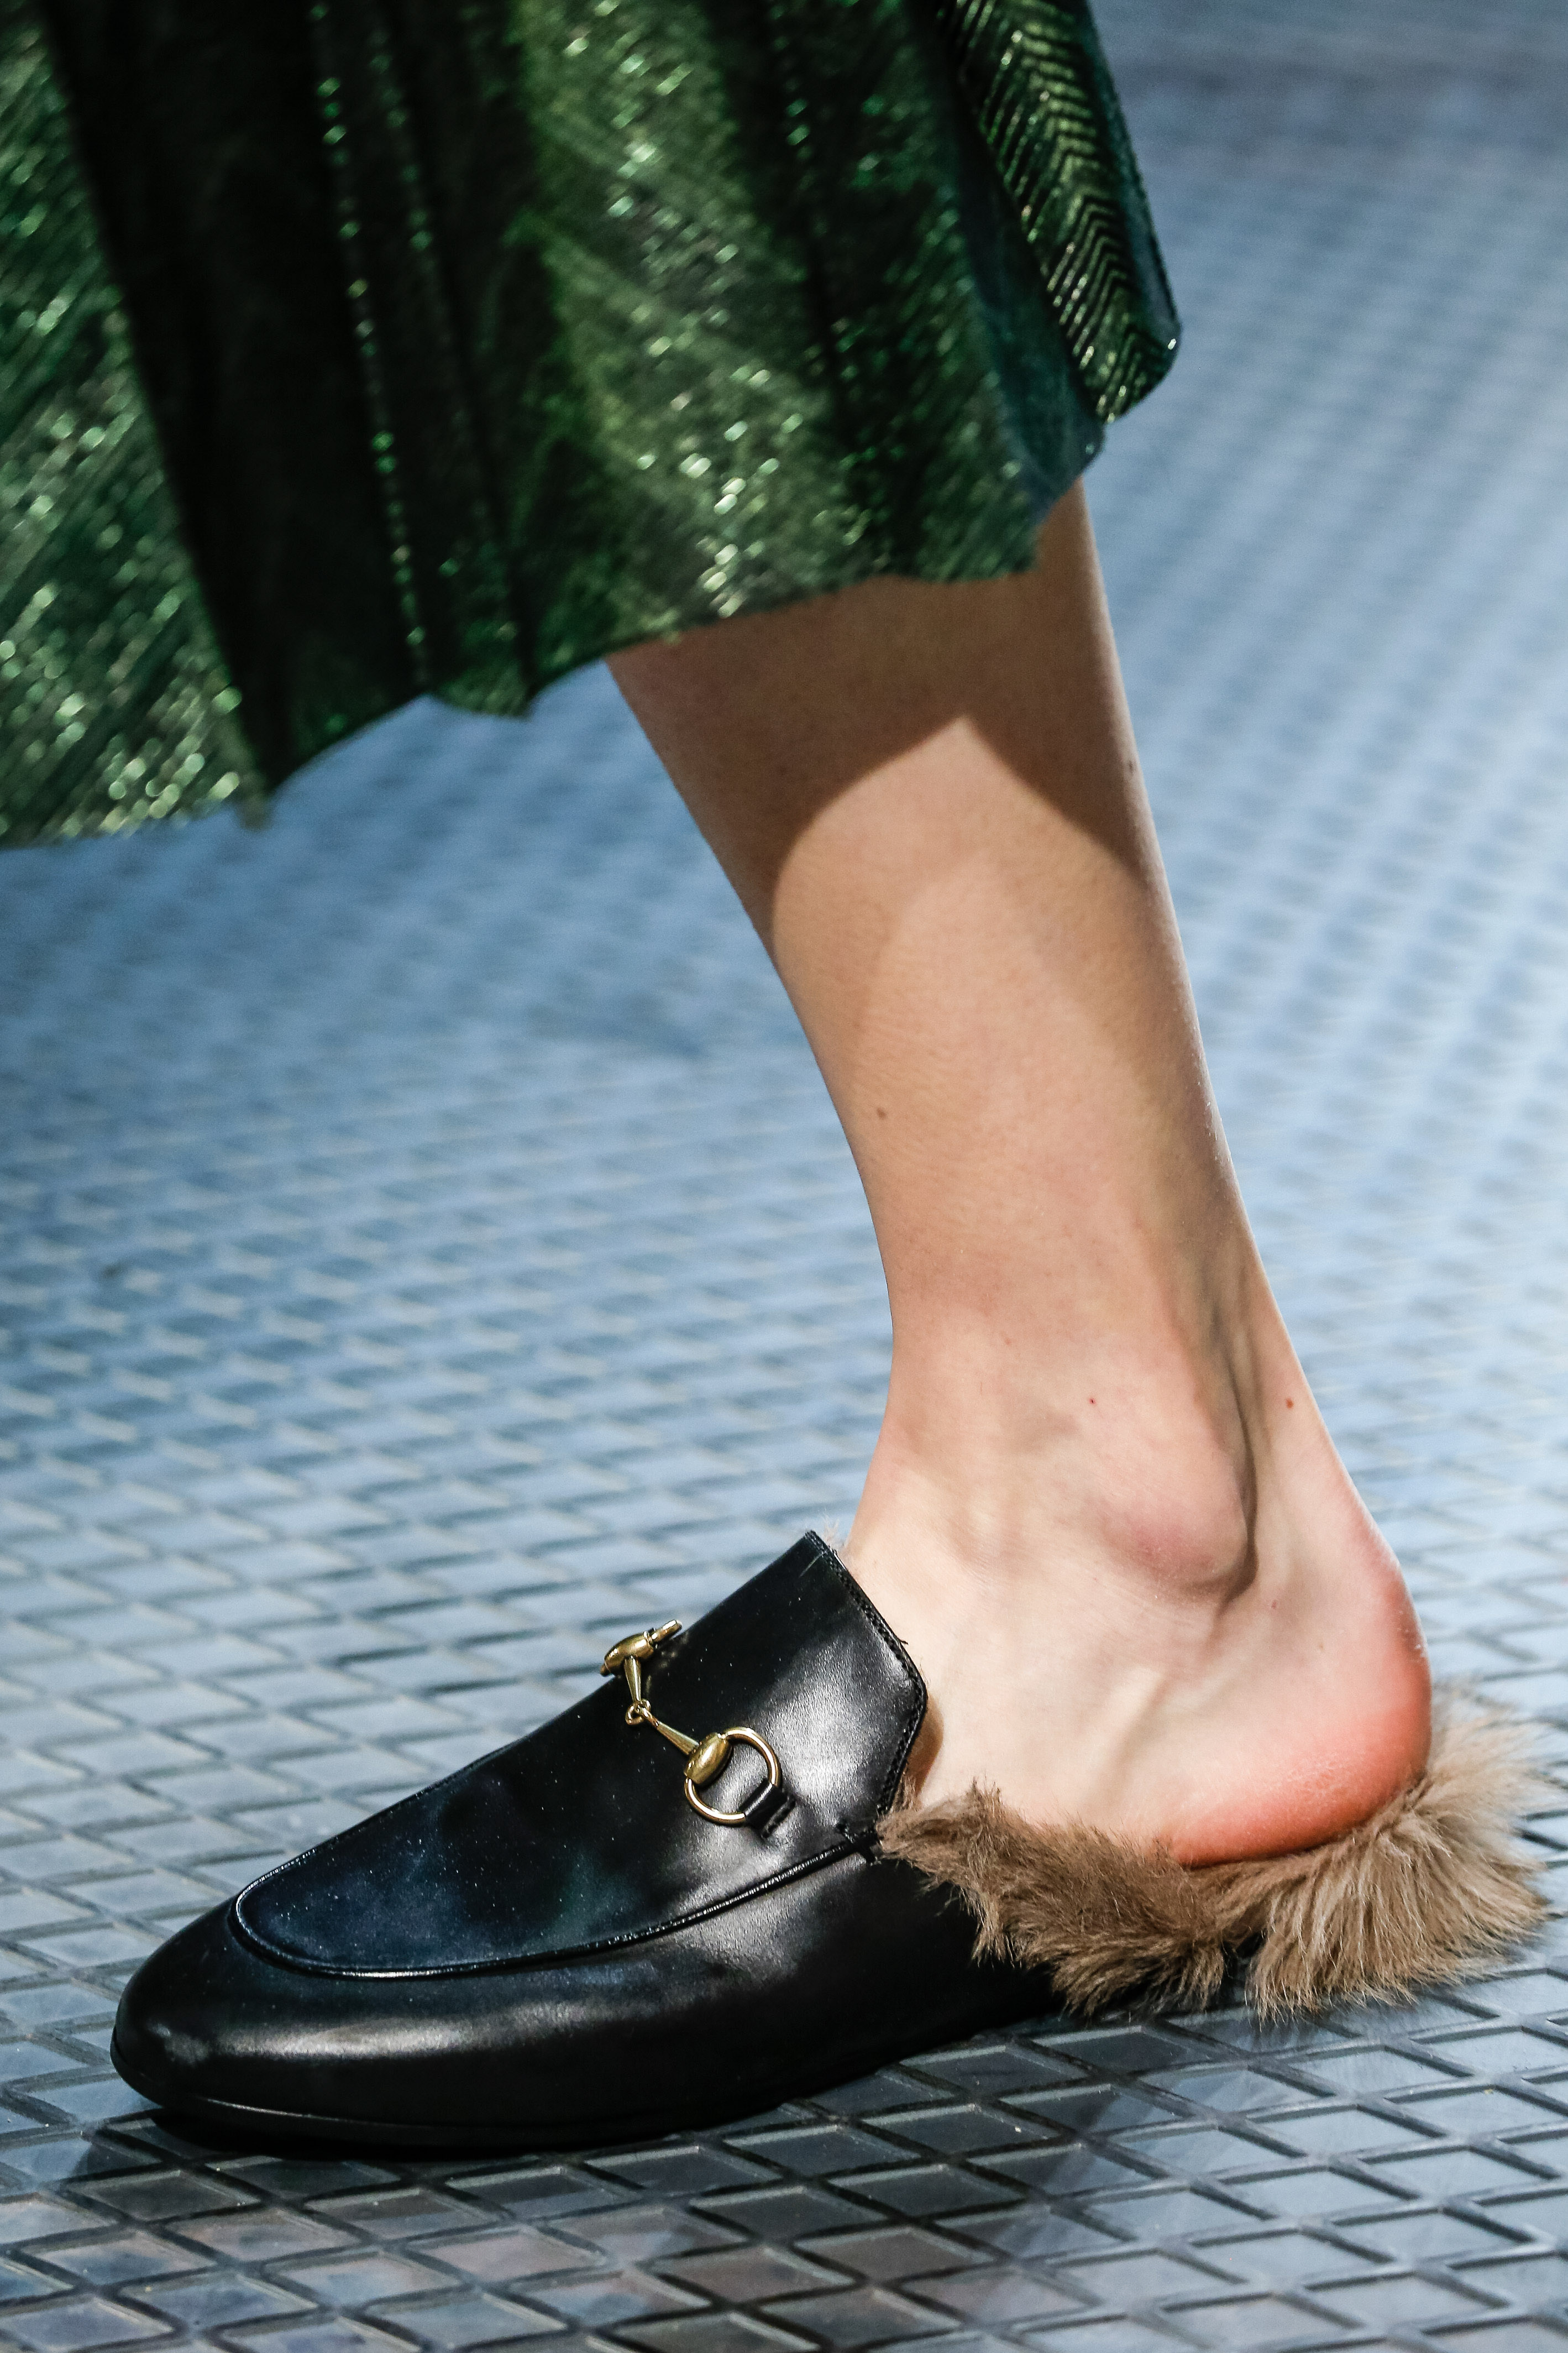 gucci slipper fell loafer offen Herbst winter 2015/16 modepilot